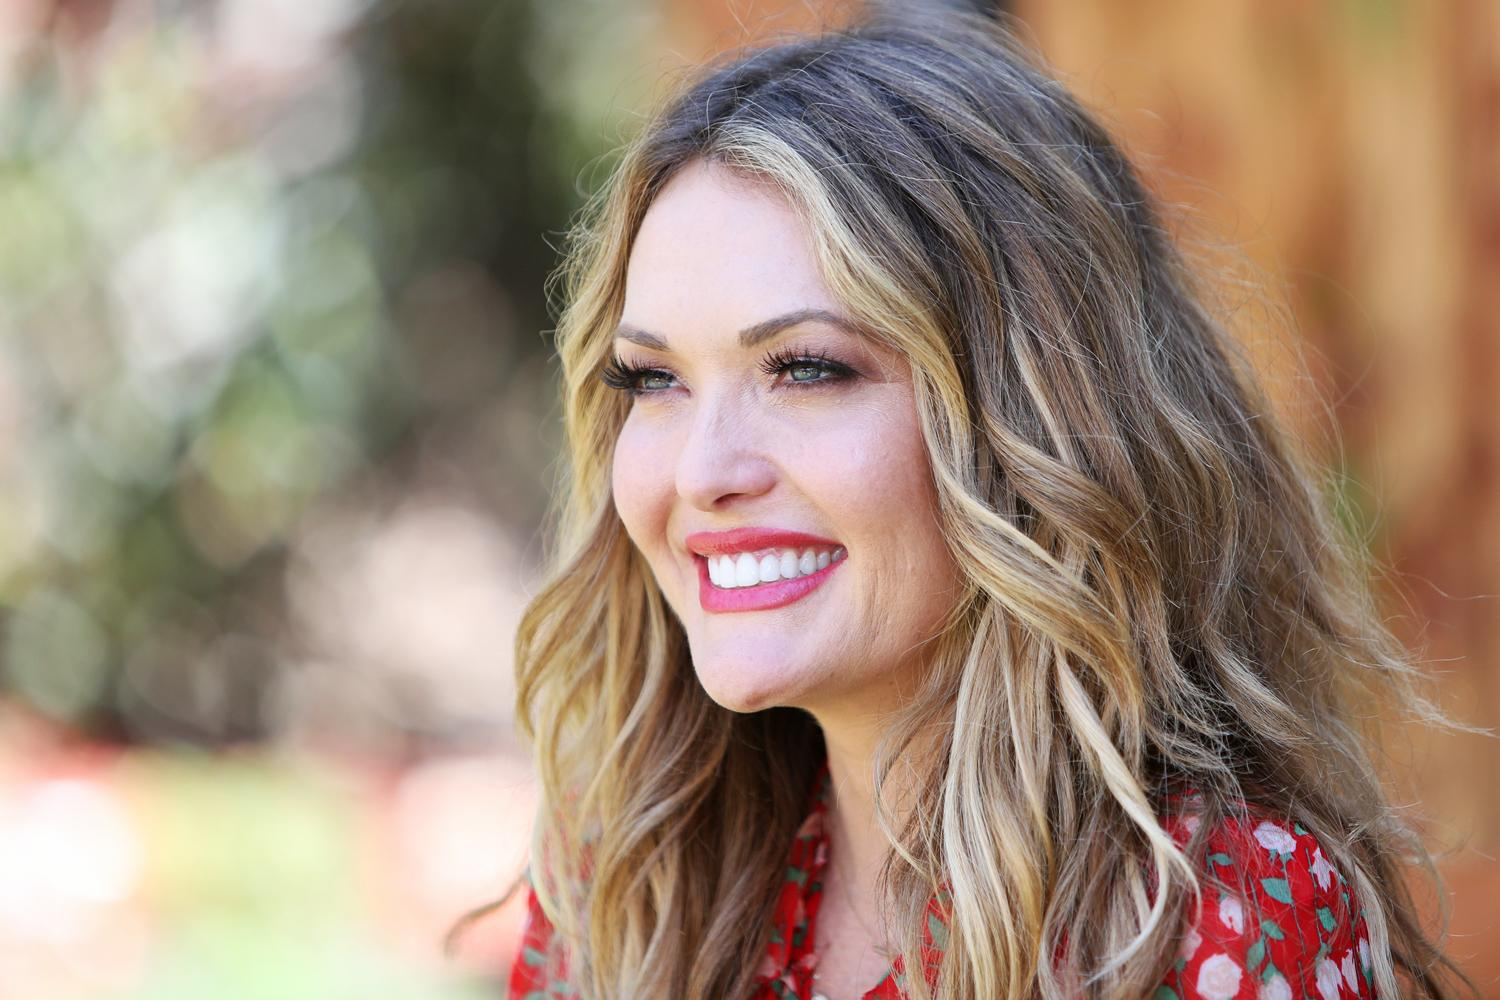 Amy Delucia she was given a 2 percent chance to survive. now, as a double amputee, amy  purdy thrives